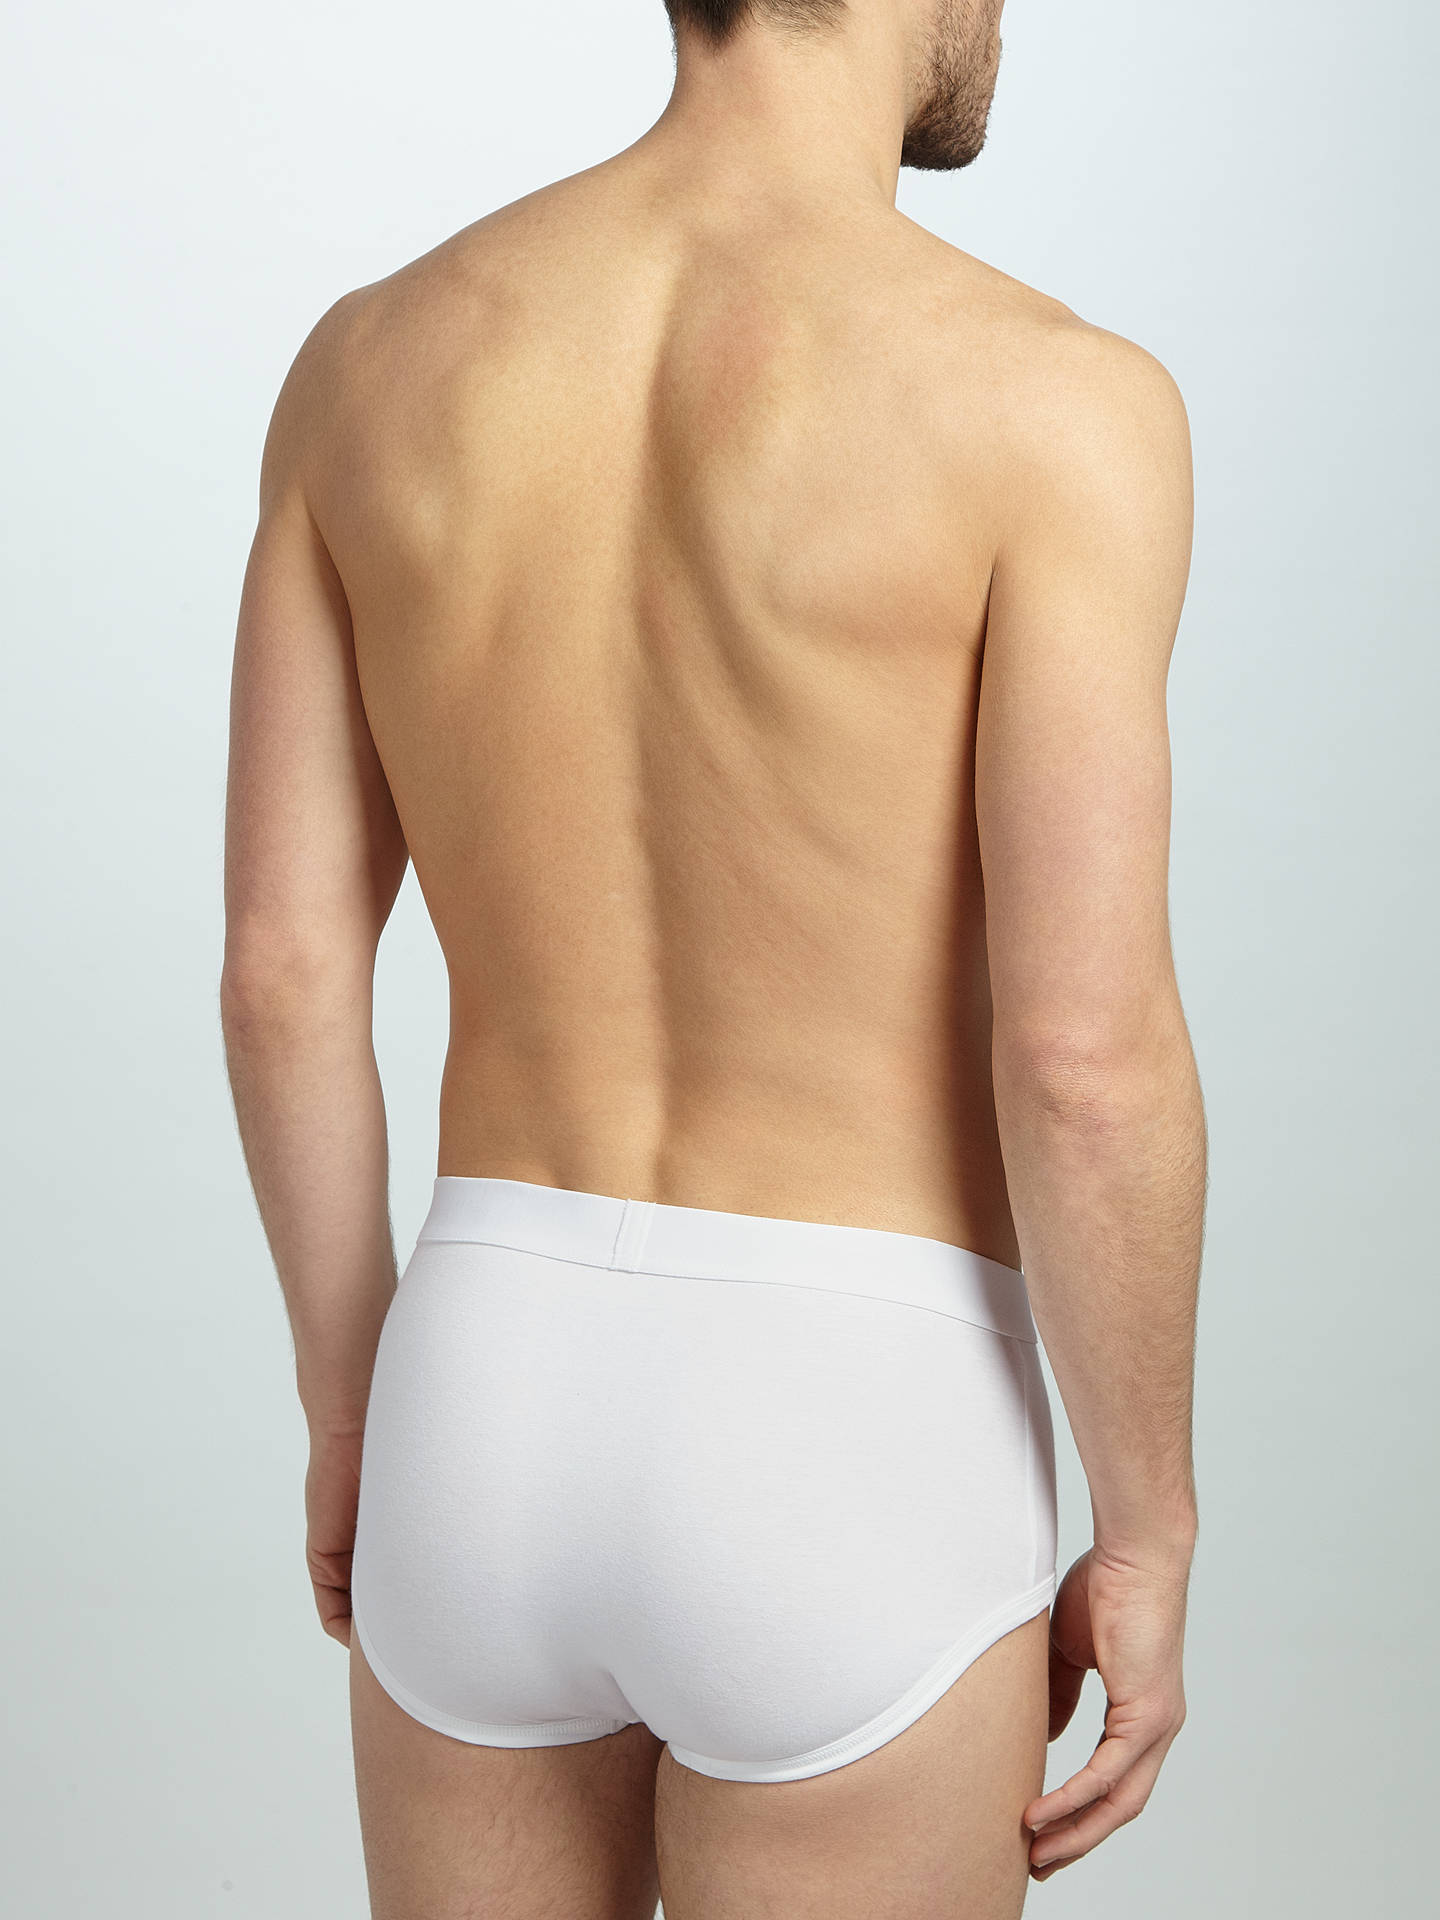 Buy John Lewis & Partners Organic Cotton Briefs, Pack of 4, White, S Online at johnlewis.com